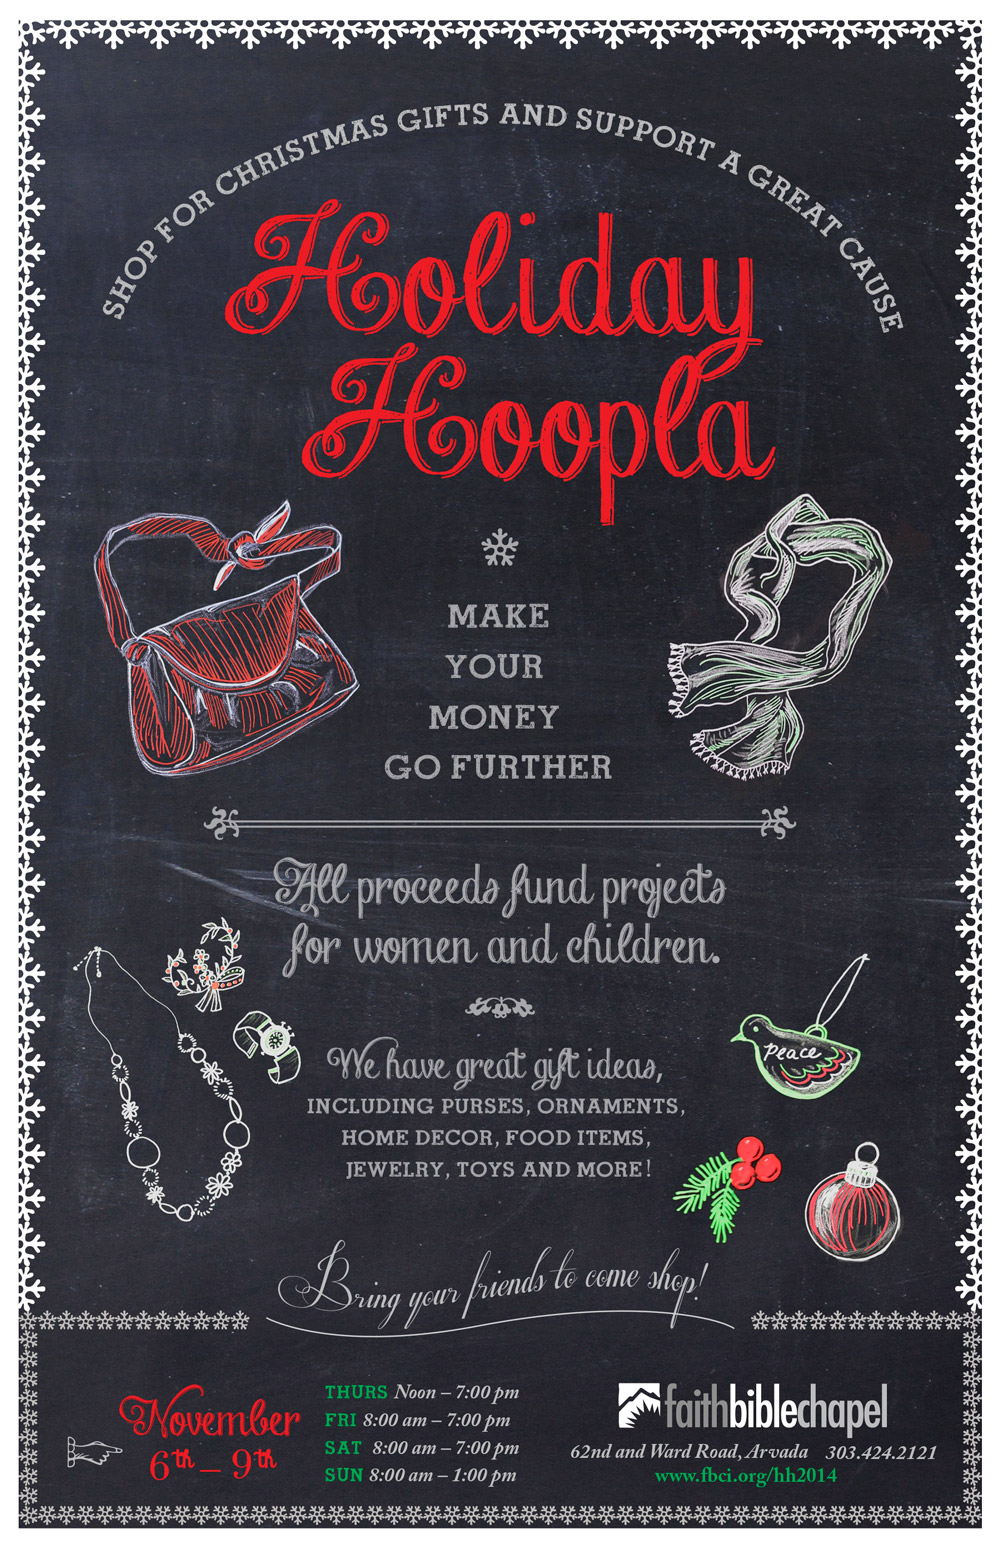 Poster: Holiday Hoopla Chalk Art Campaign Illustrated and Designed by Cherish Flieder